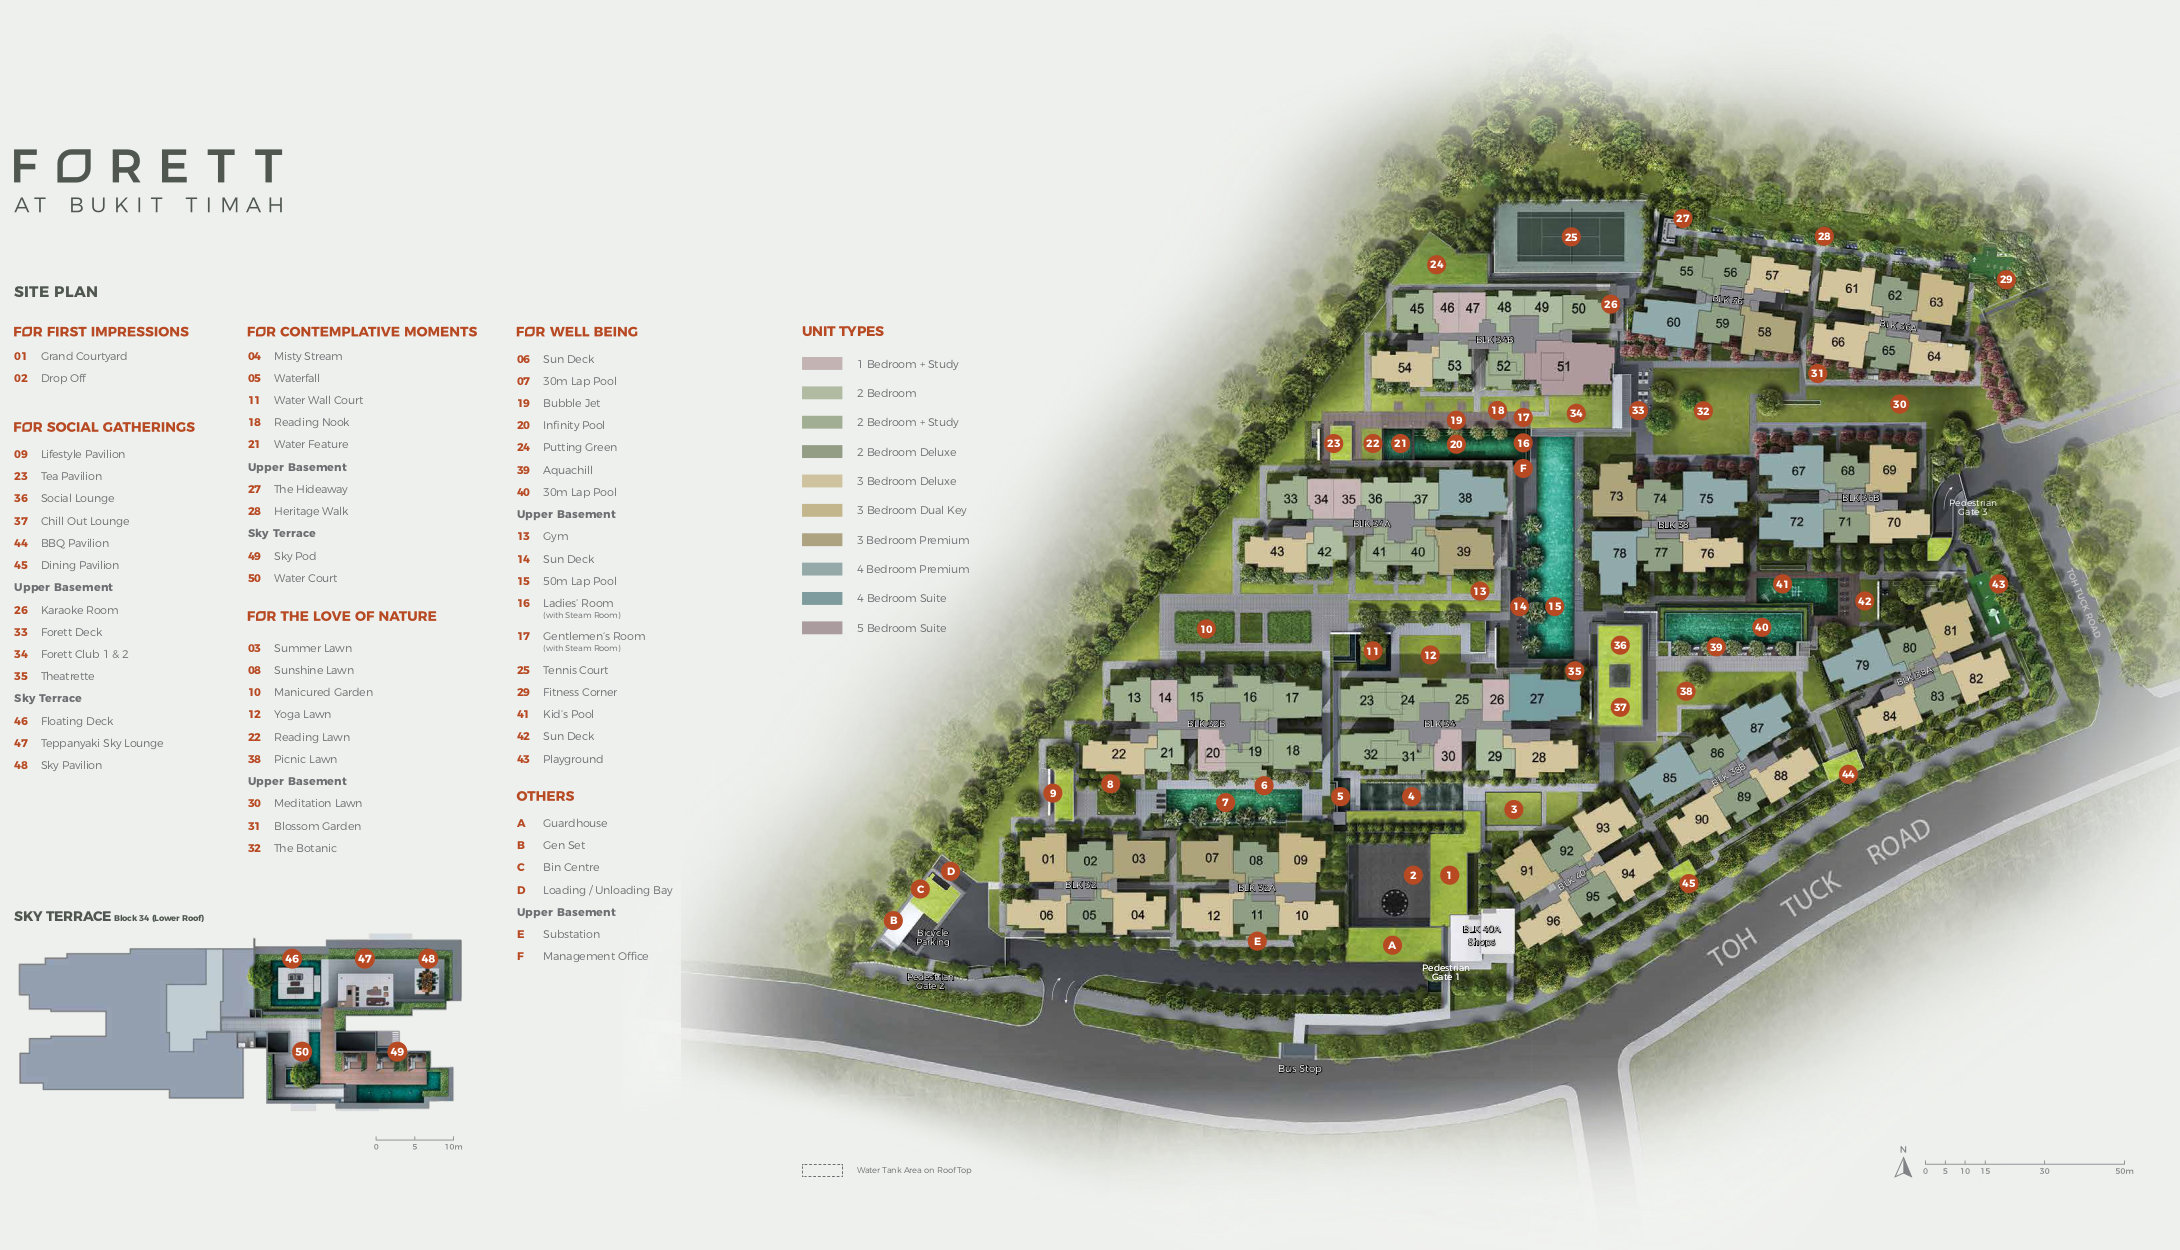 Forett Site Plan Layout